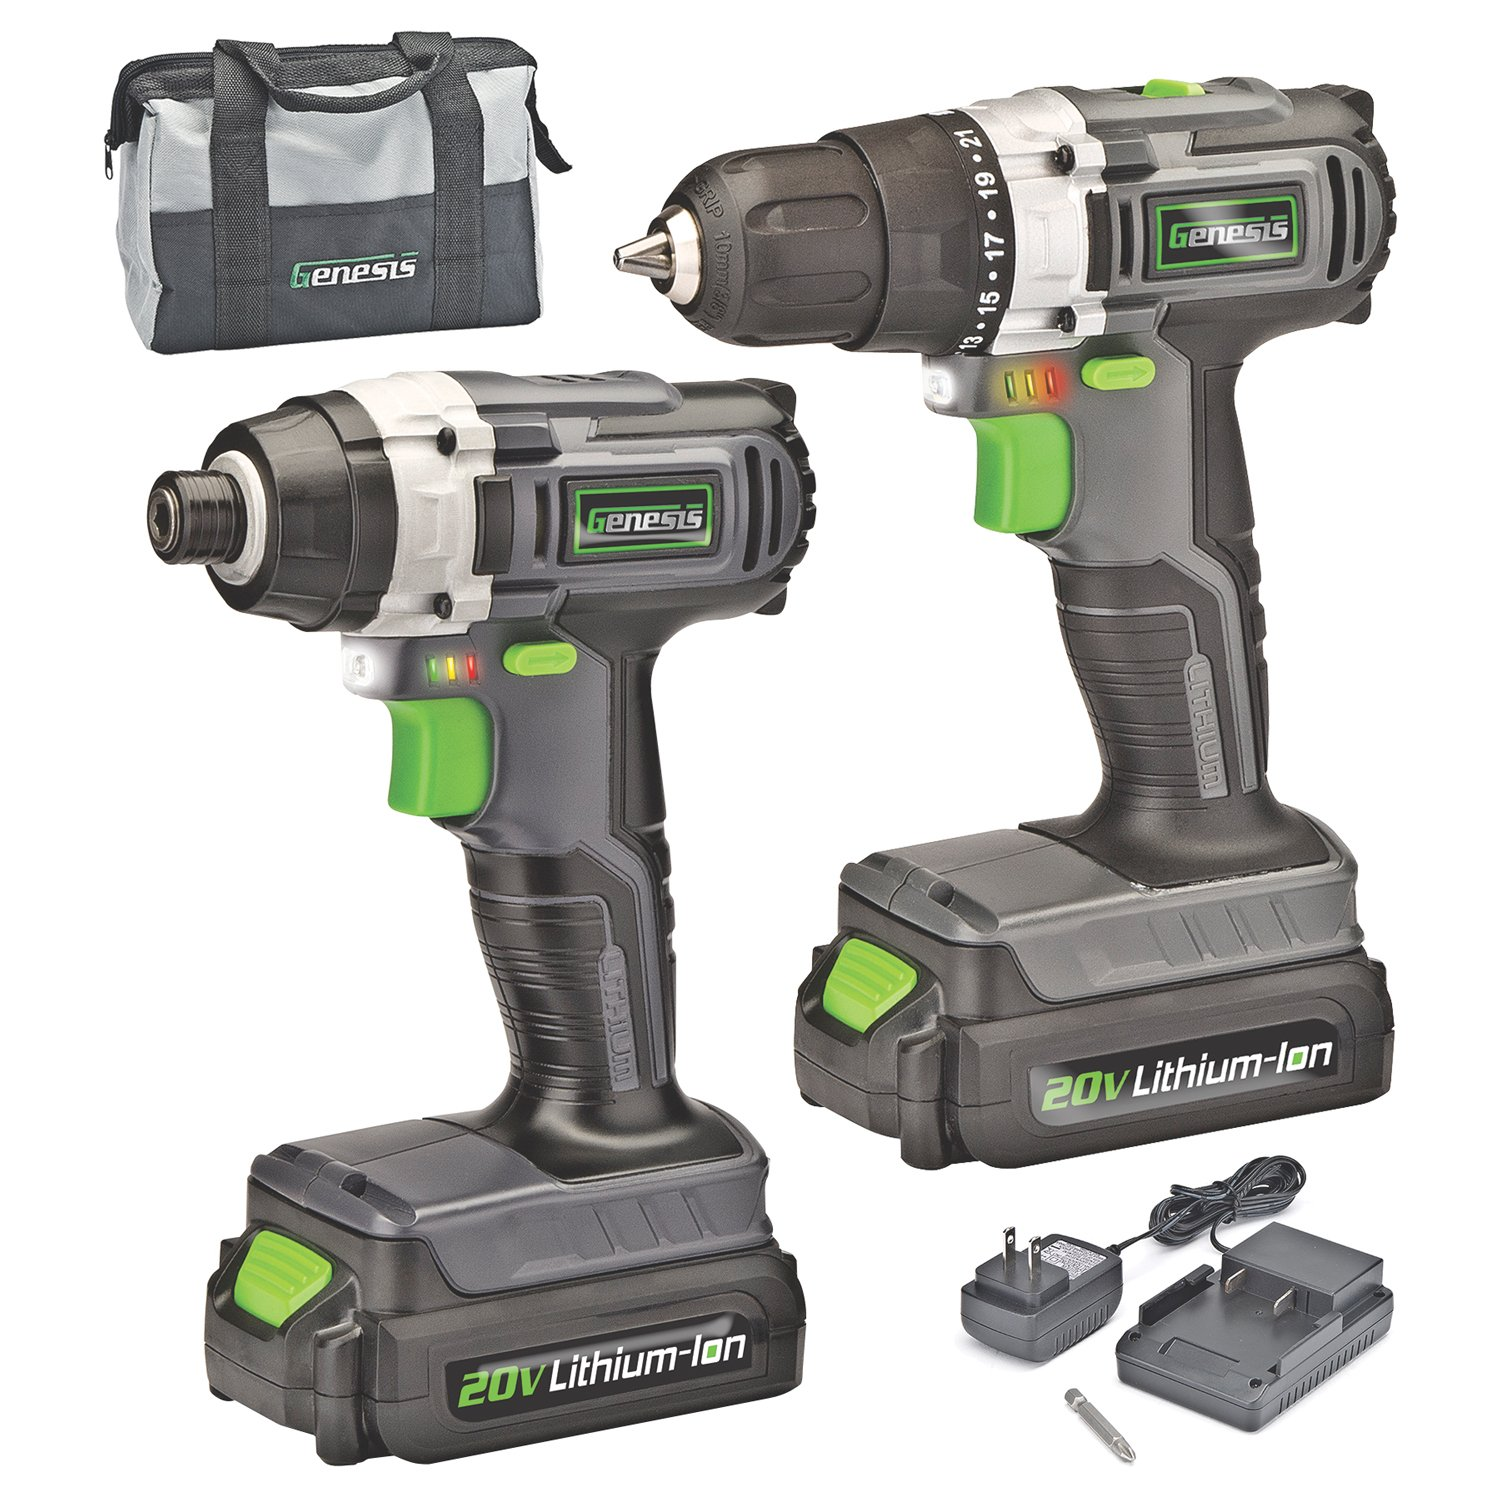 Genesis 20-Volt Lithium-Ion Cordless Drill Impact Driver Combo Kit 2-Tool